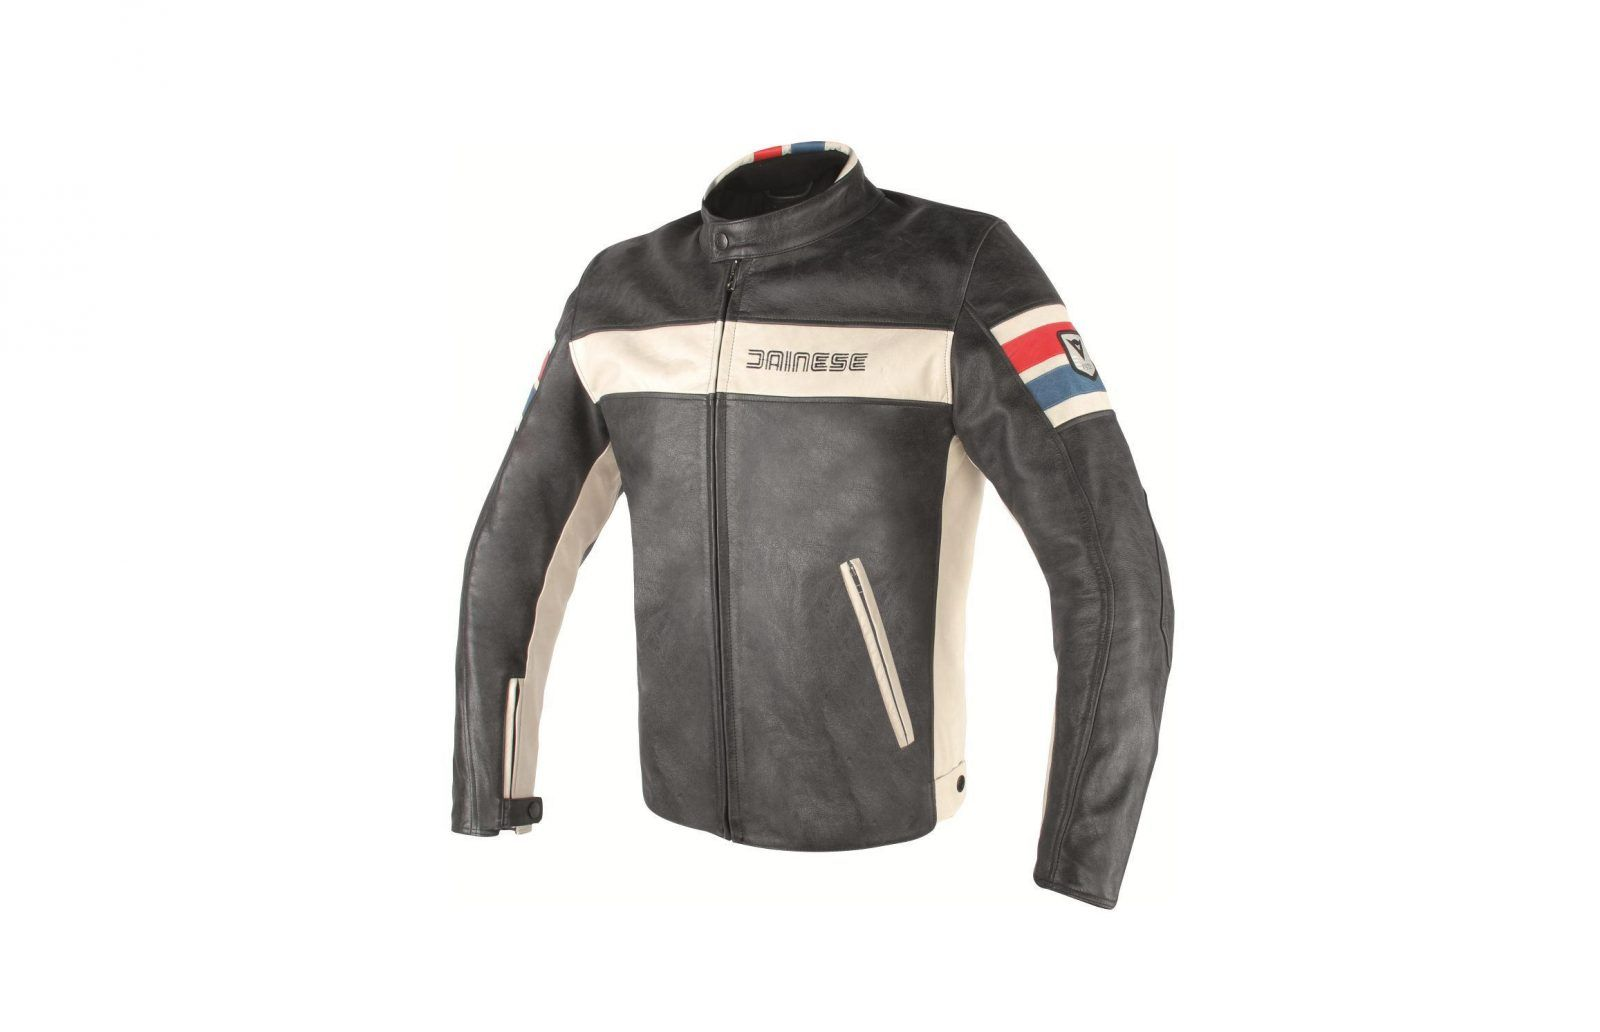 46b48ed5adf The Dainese HF D1 Perforated Leather Jacket is a reissue of one of the  Italian brand's